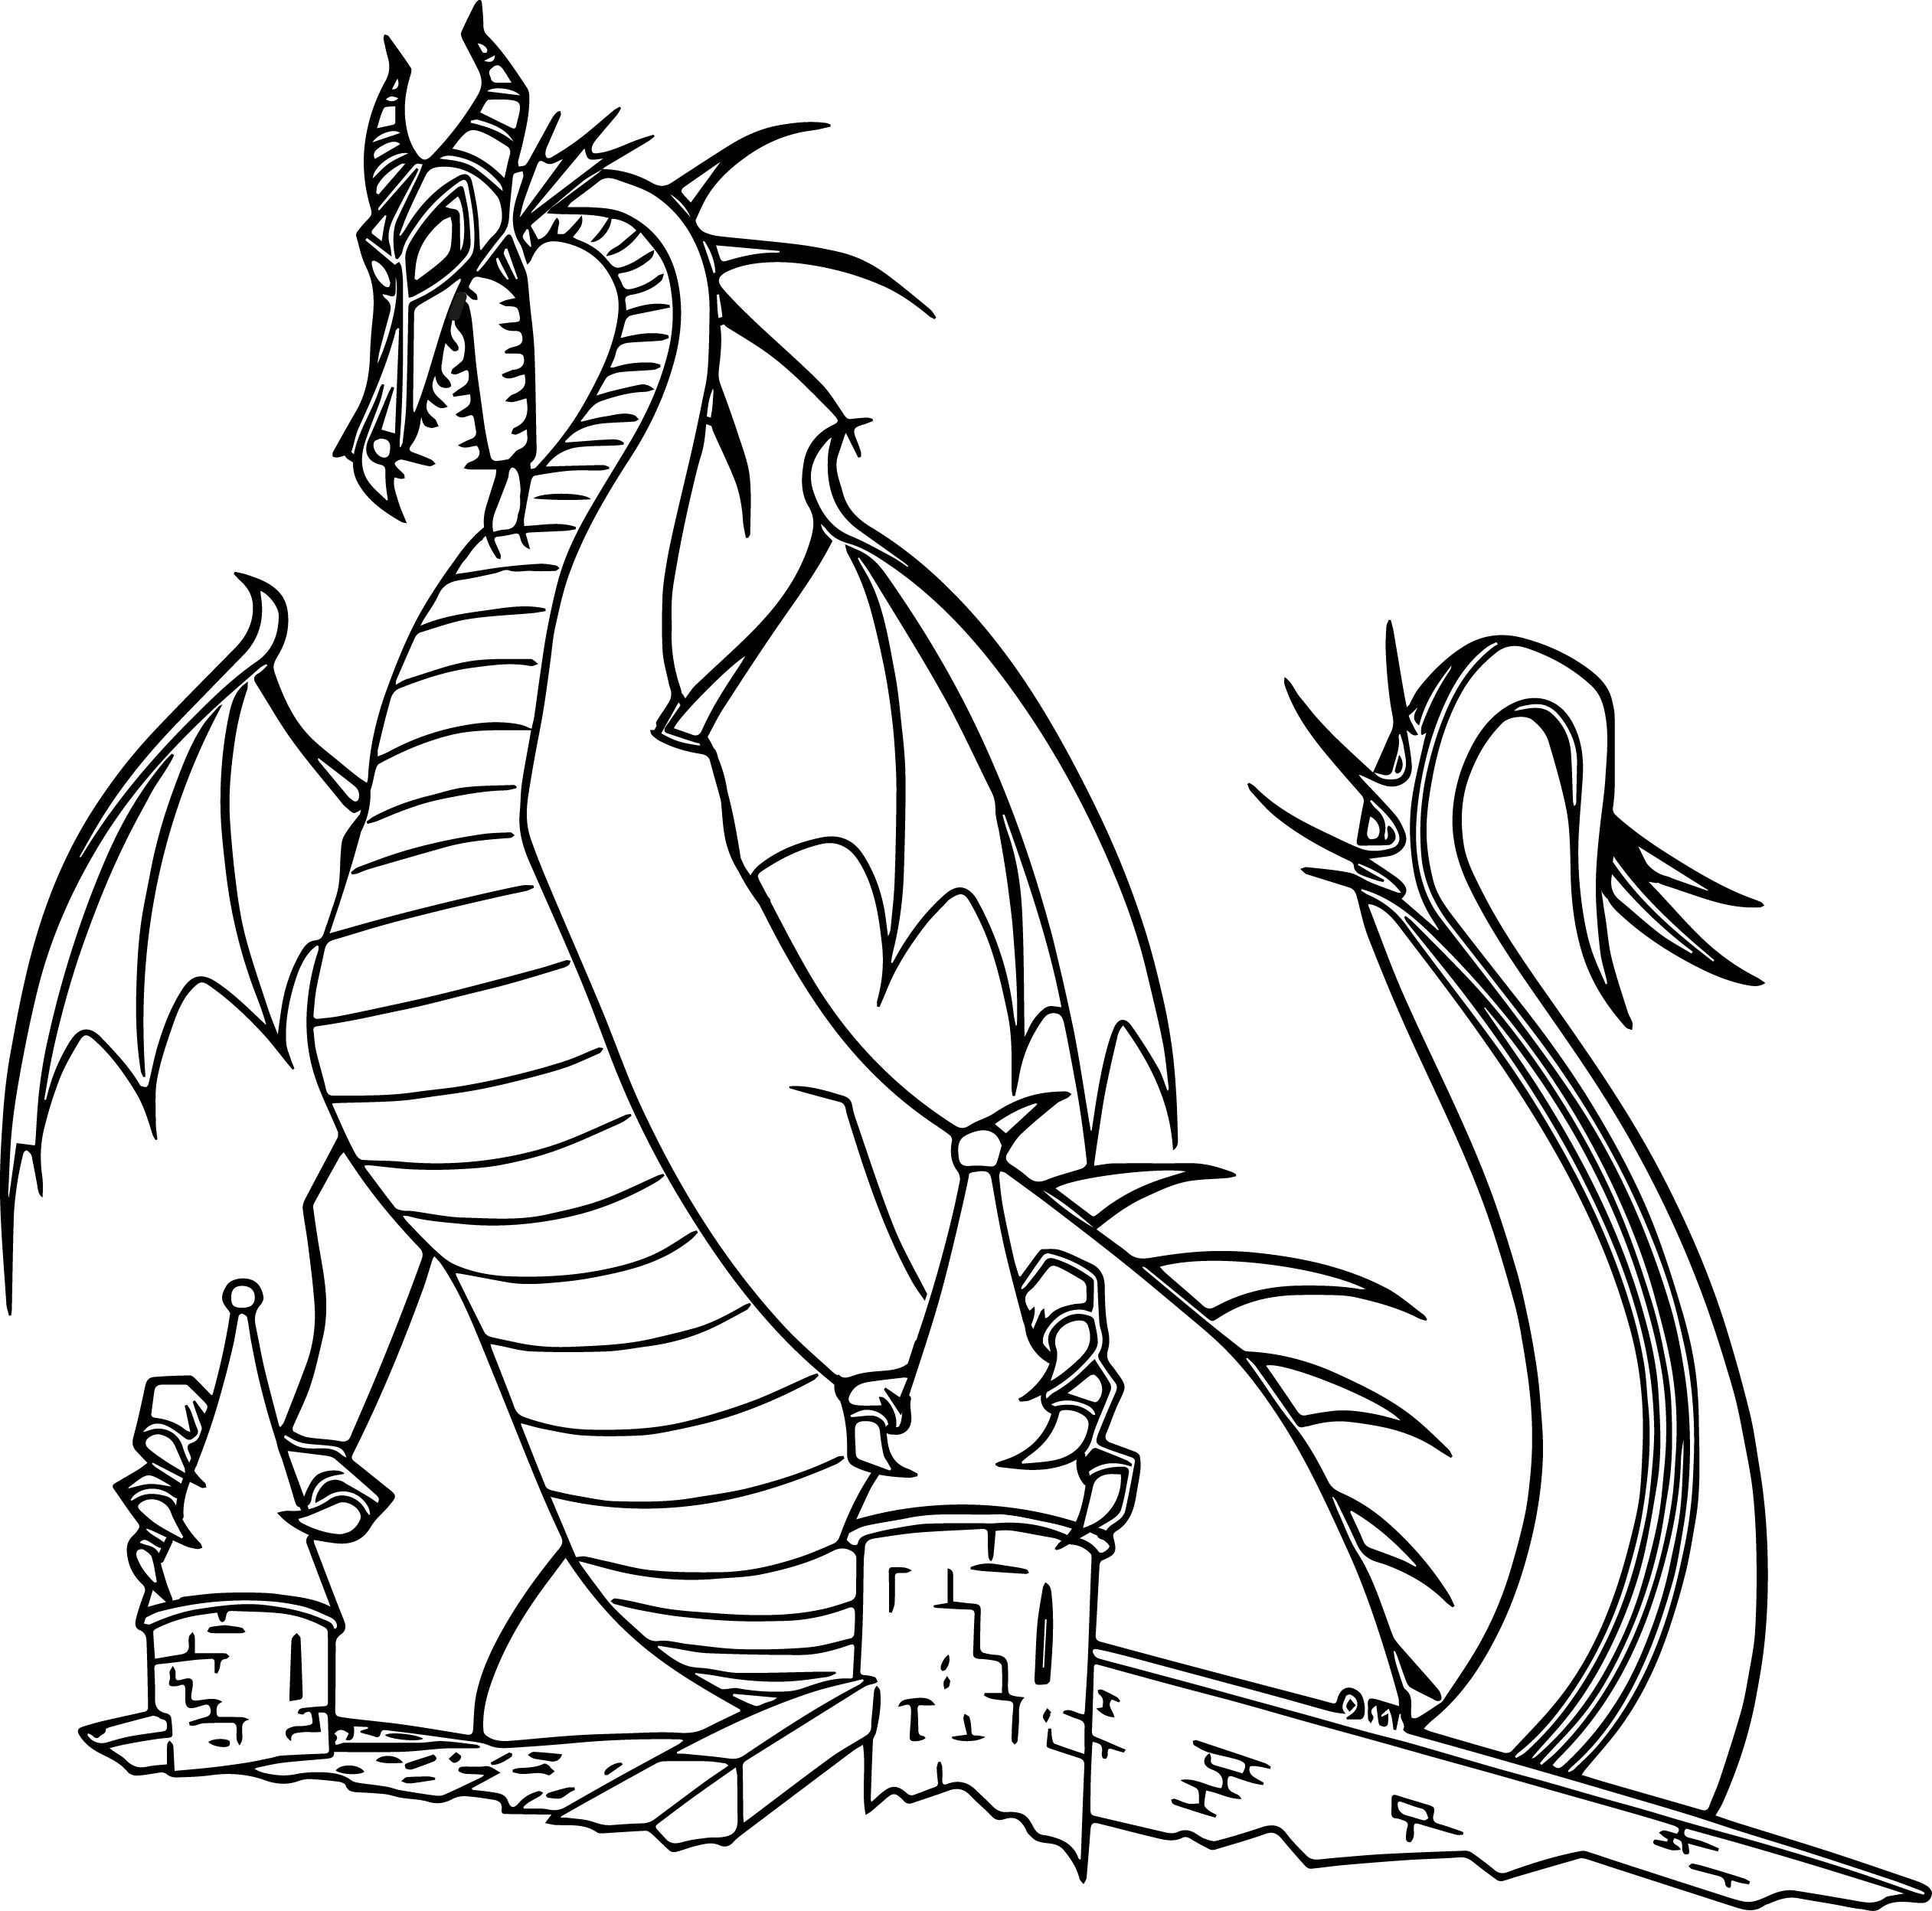 Dragon Maleficent Coloring Page Cartoon Coloring Pages Animal Coloring Pages Dragon Coloring Page